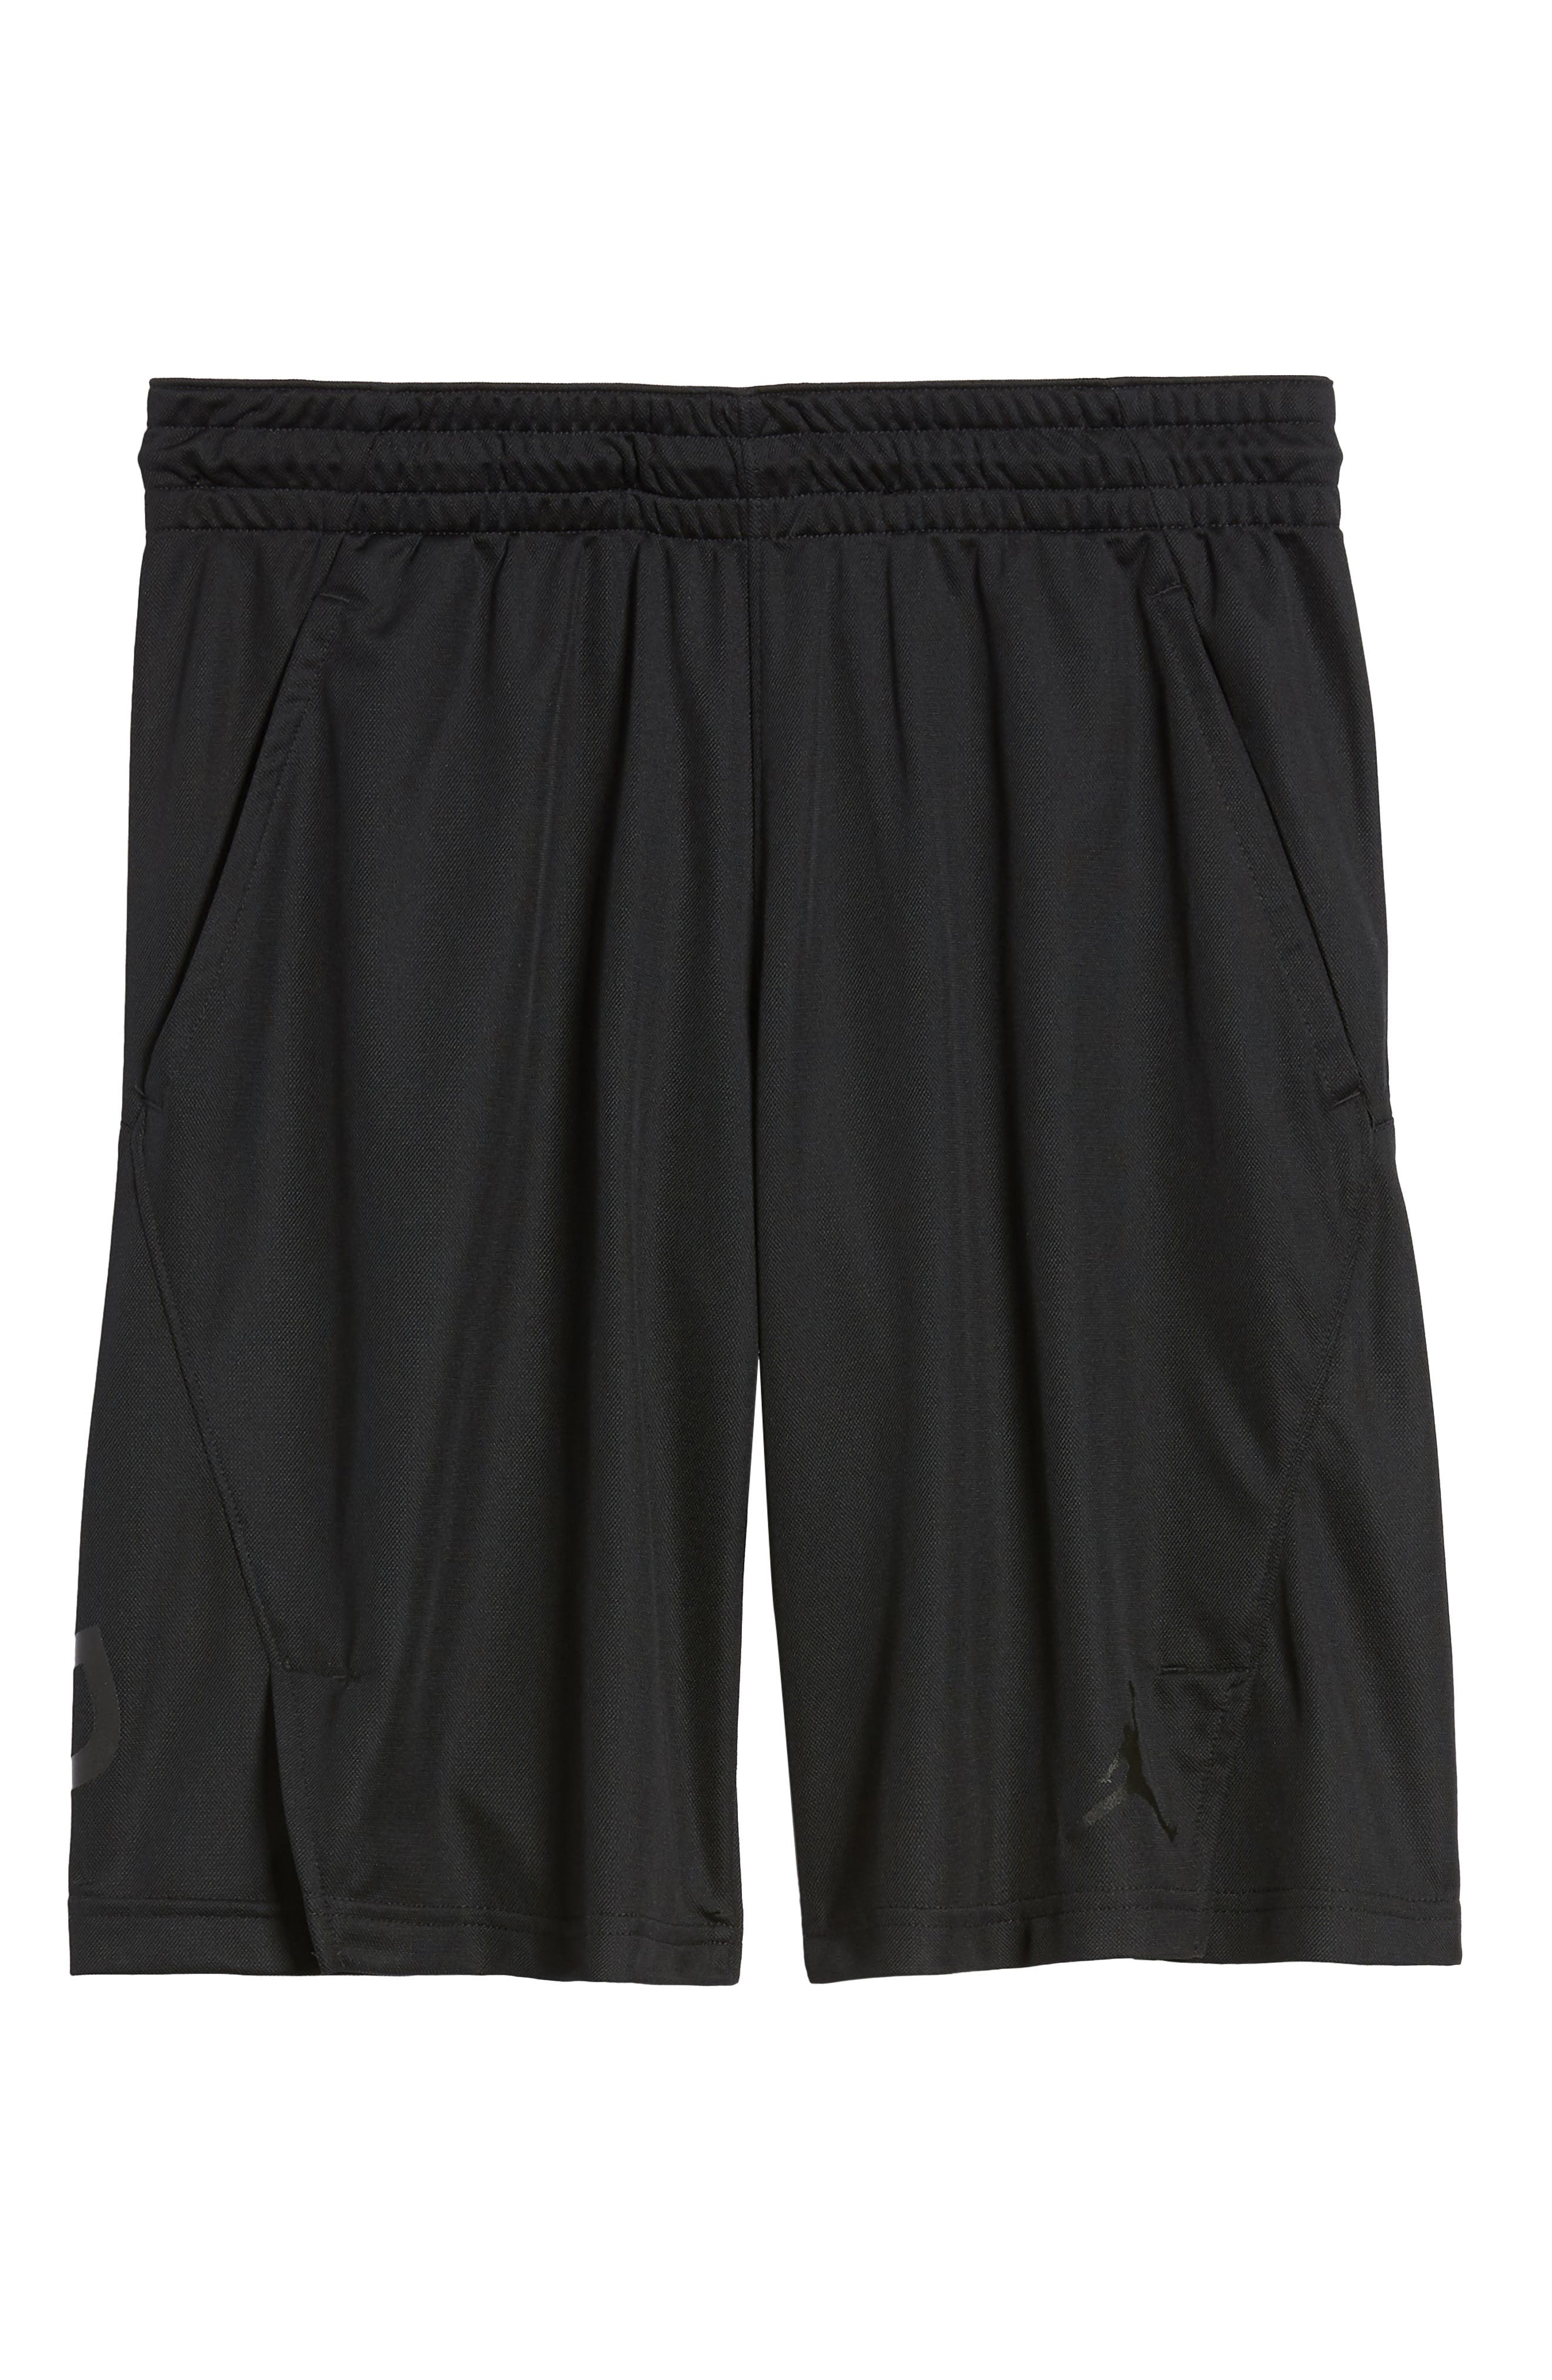 Flight Basketball Shorts,                             Alternate thumbnail 6, color,                             010